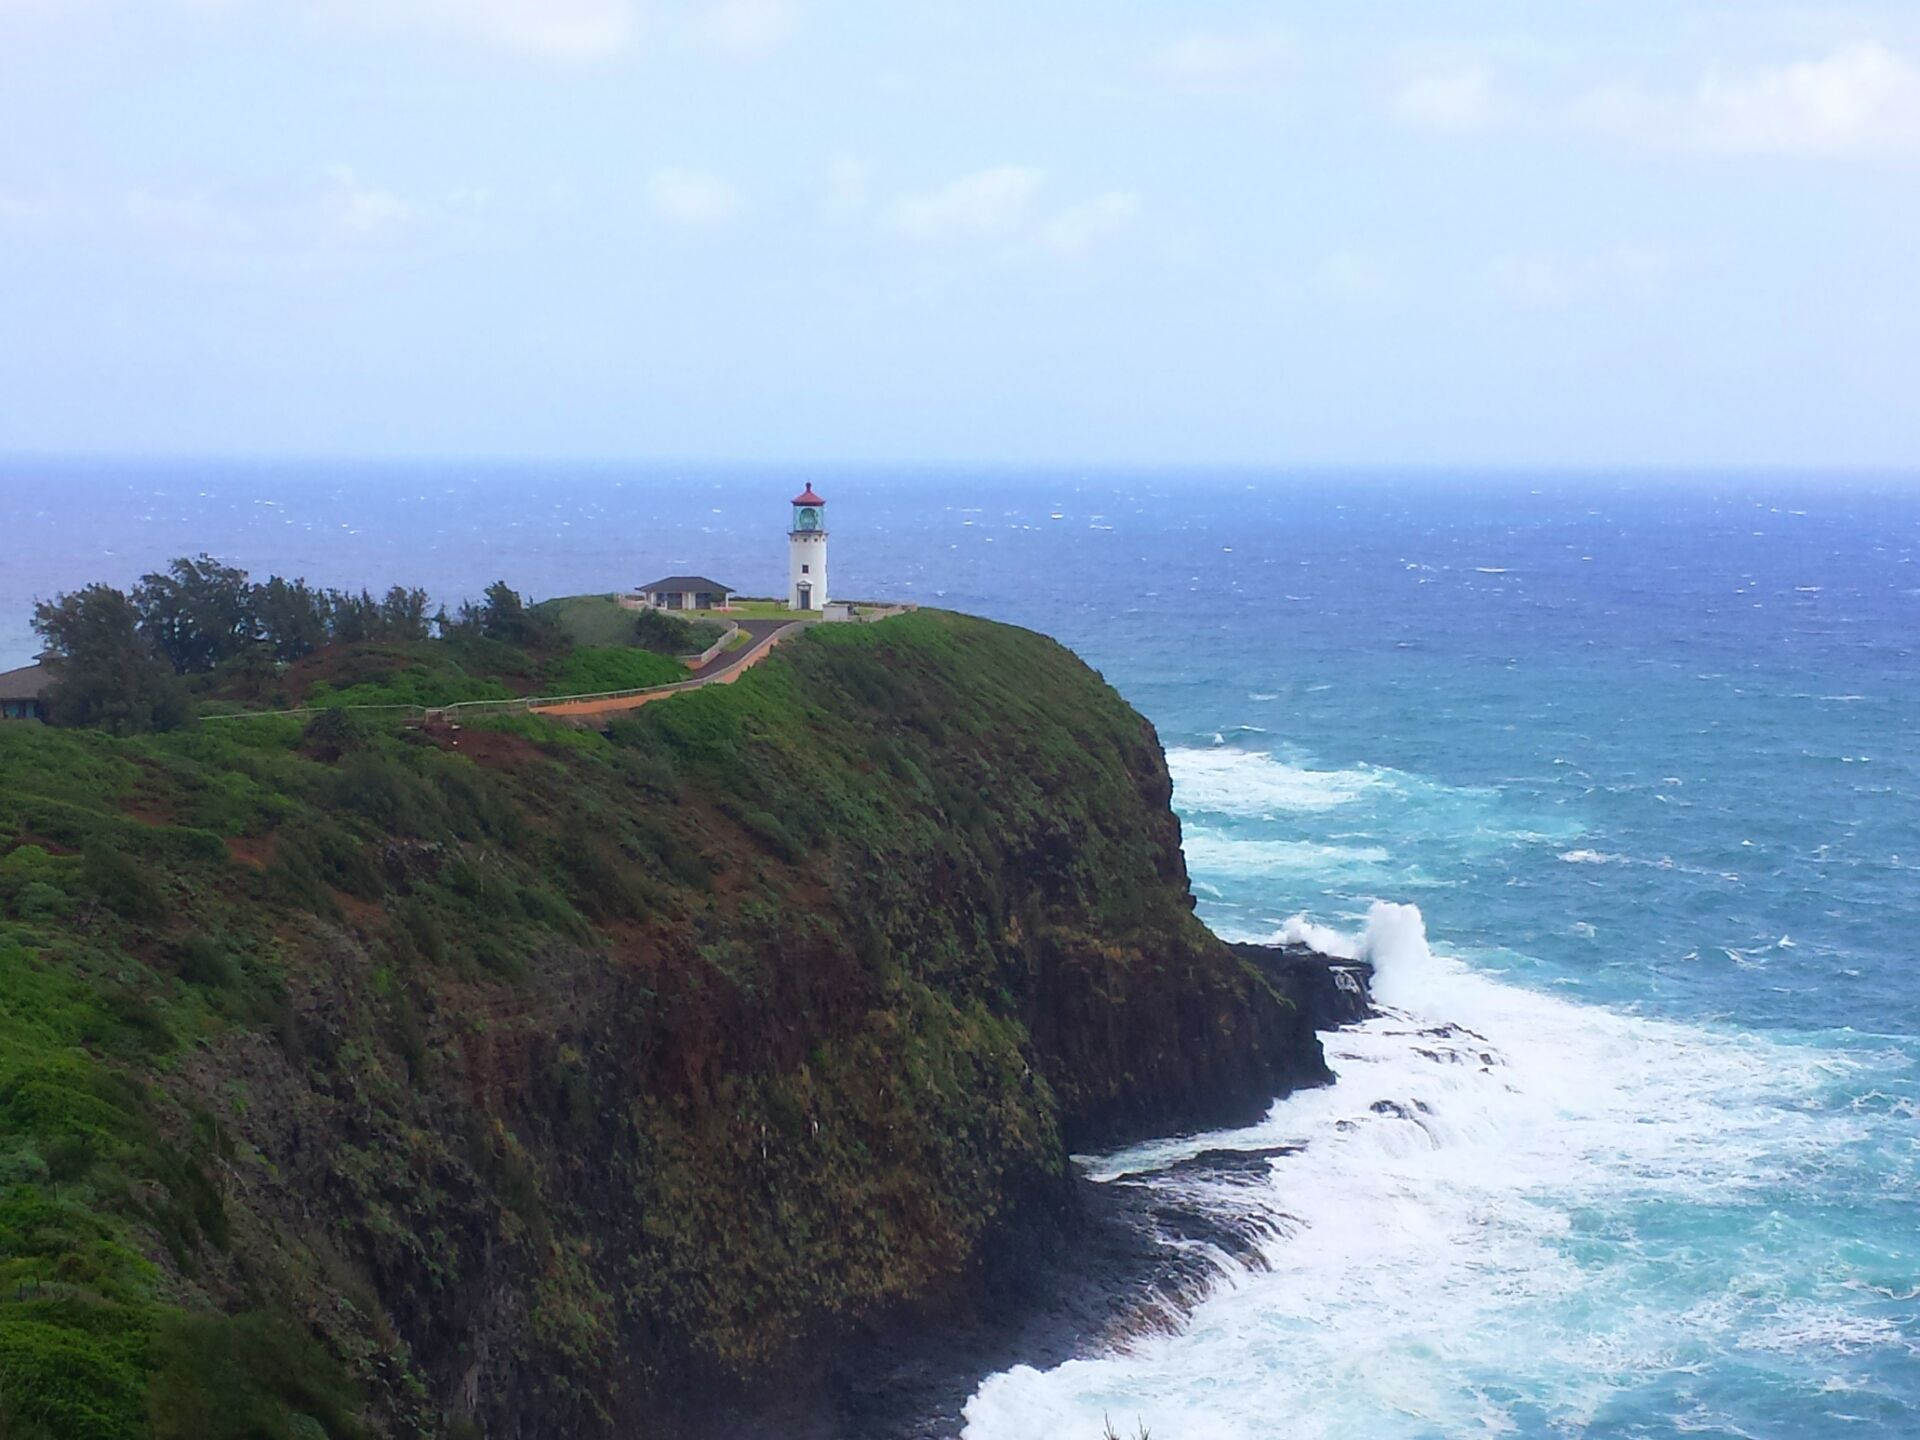 Kilauea Lighthouse in Kauai!